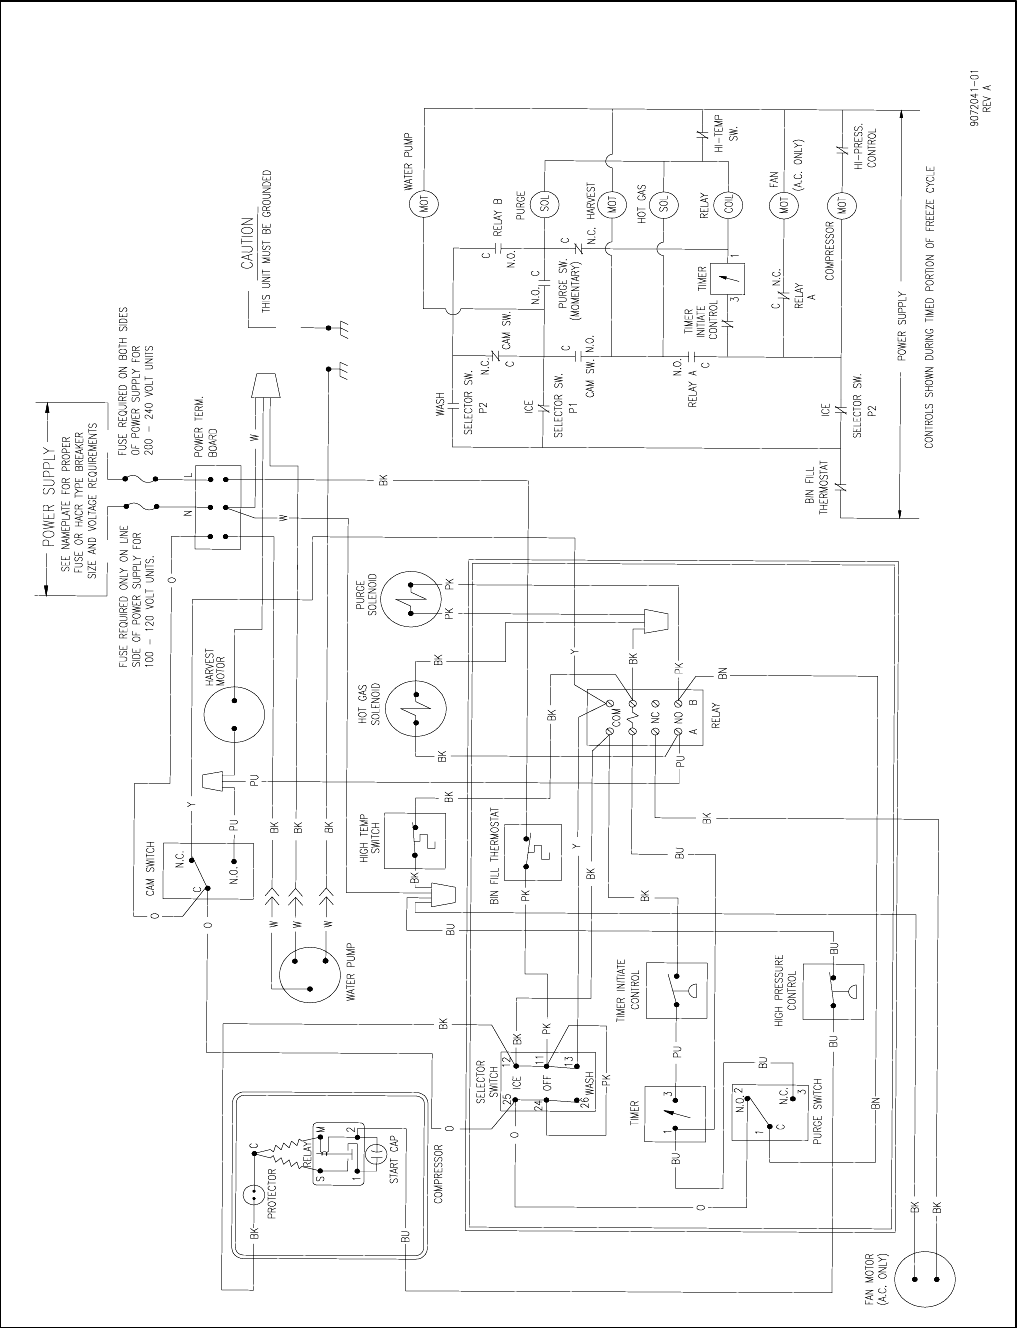 [DIAGRAM_38DE]  Page 12 of Ice-O-Matic Ice Maker ICEU220 User Guide   ManualsOnline.com   Ice O Matic Wiring Diagram      Kitchen Appliance Manuals - ManualsOnline.com